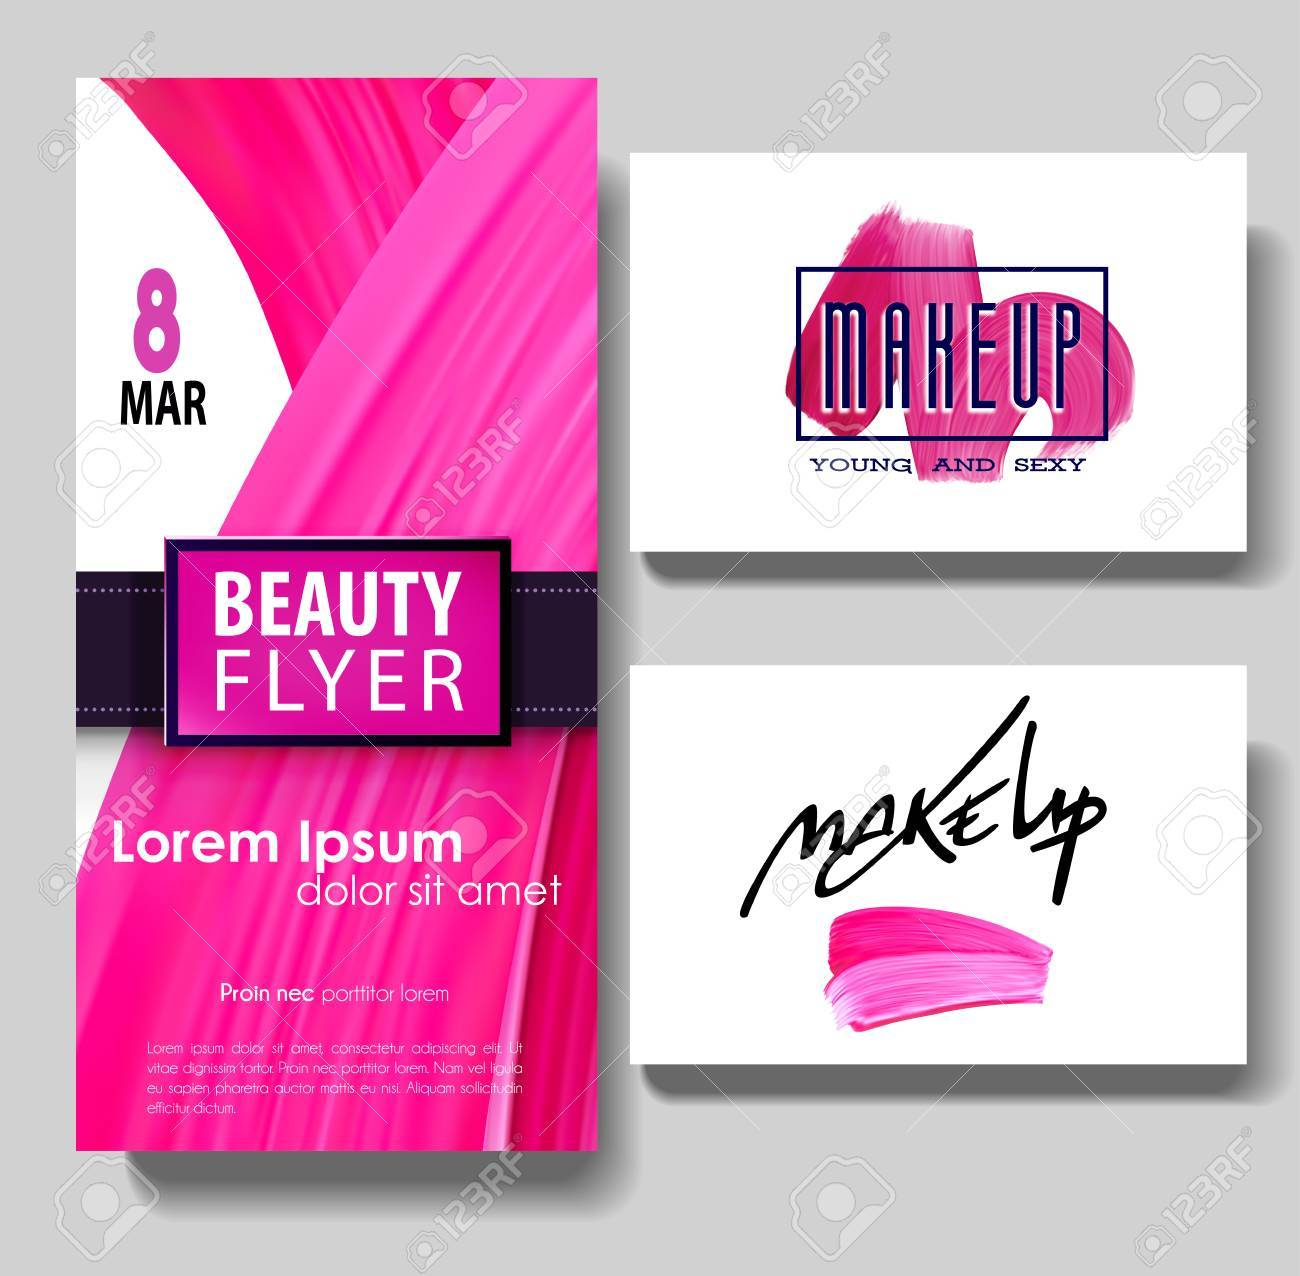 Makeup business card make up letters and lipstick mark texture makeup business card make up letters and lipstick mark texture 8 march womens day colourmoves